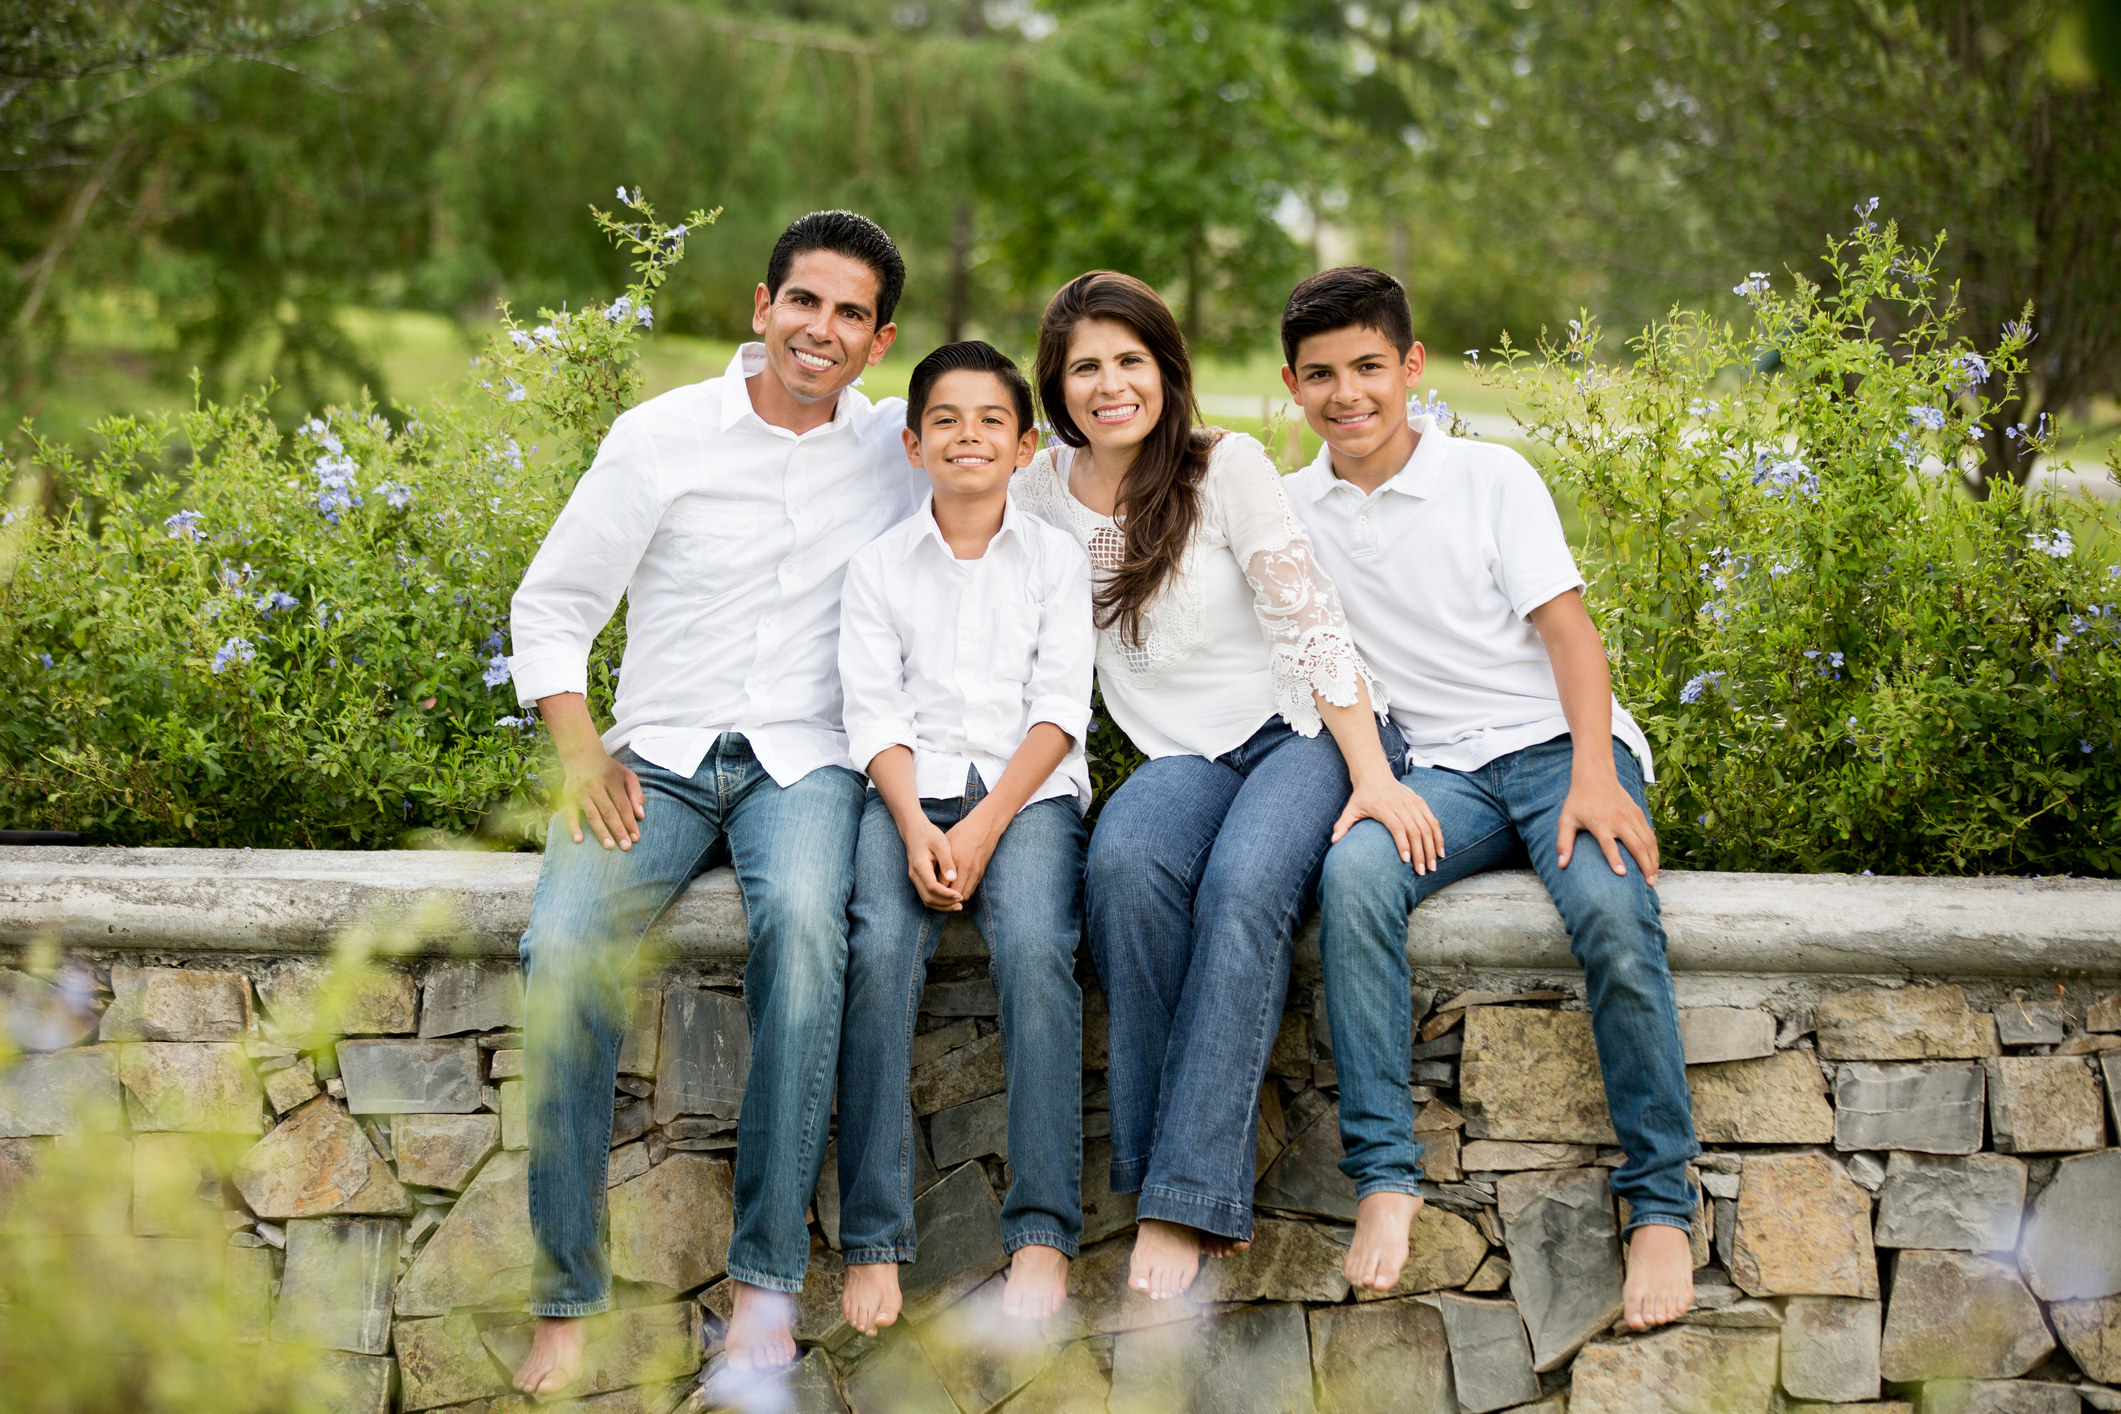 A photo of a family mom, dad, and two sons all wearing blue jeans and white shirts